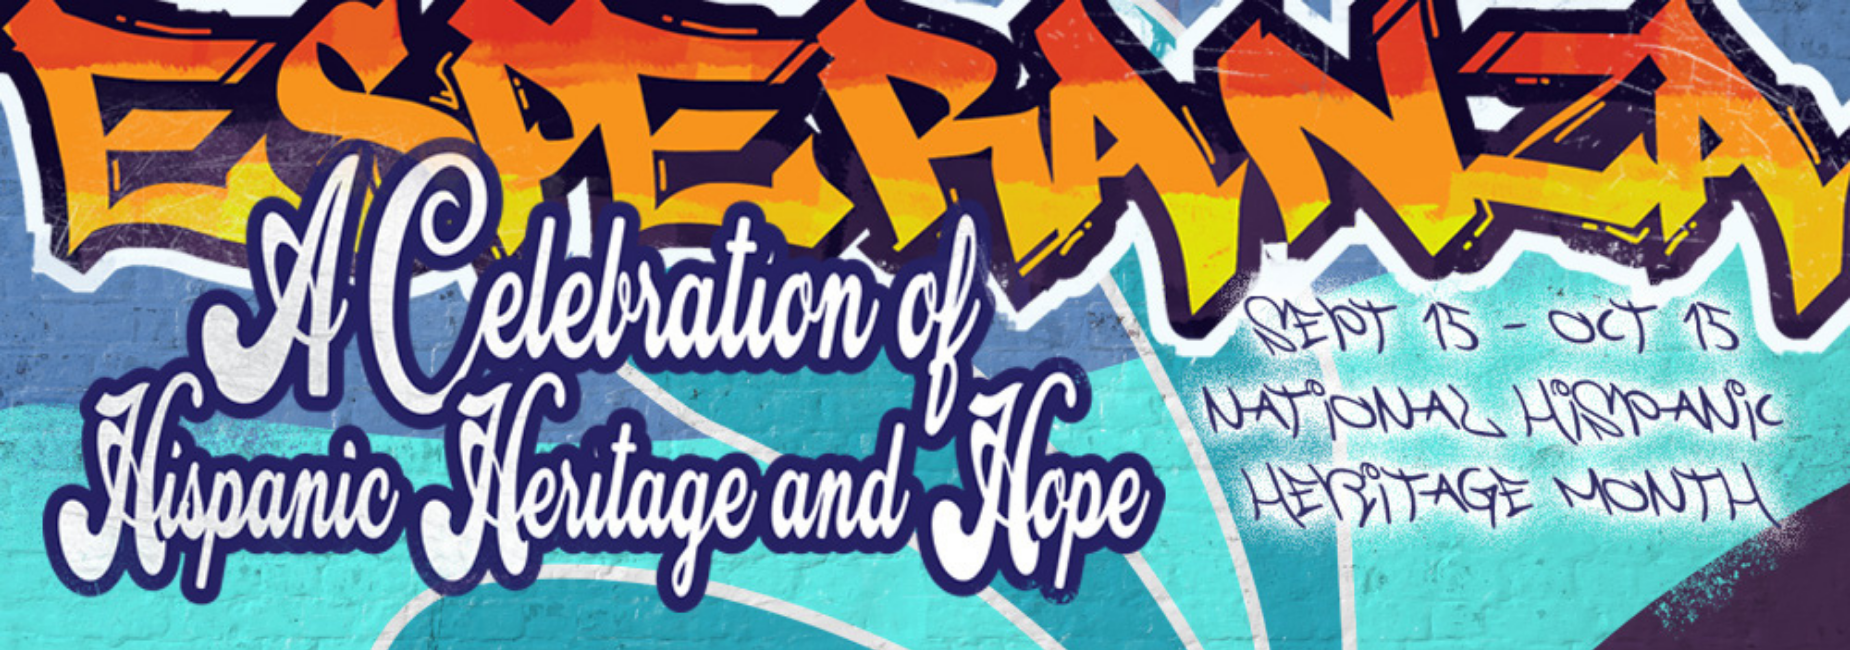 graphic of graffiti reads Esperanza A Celebration of Hispanic Heritage and Hope from September 15 through October 15